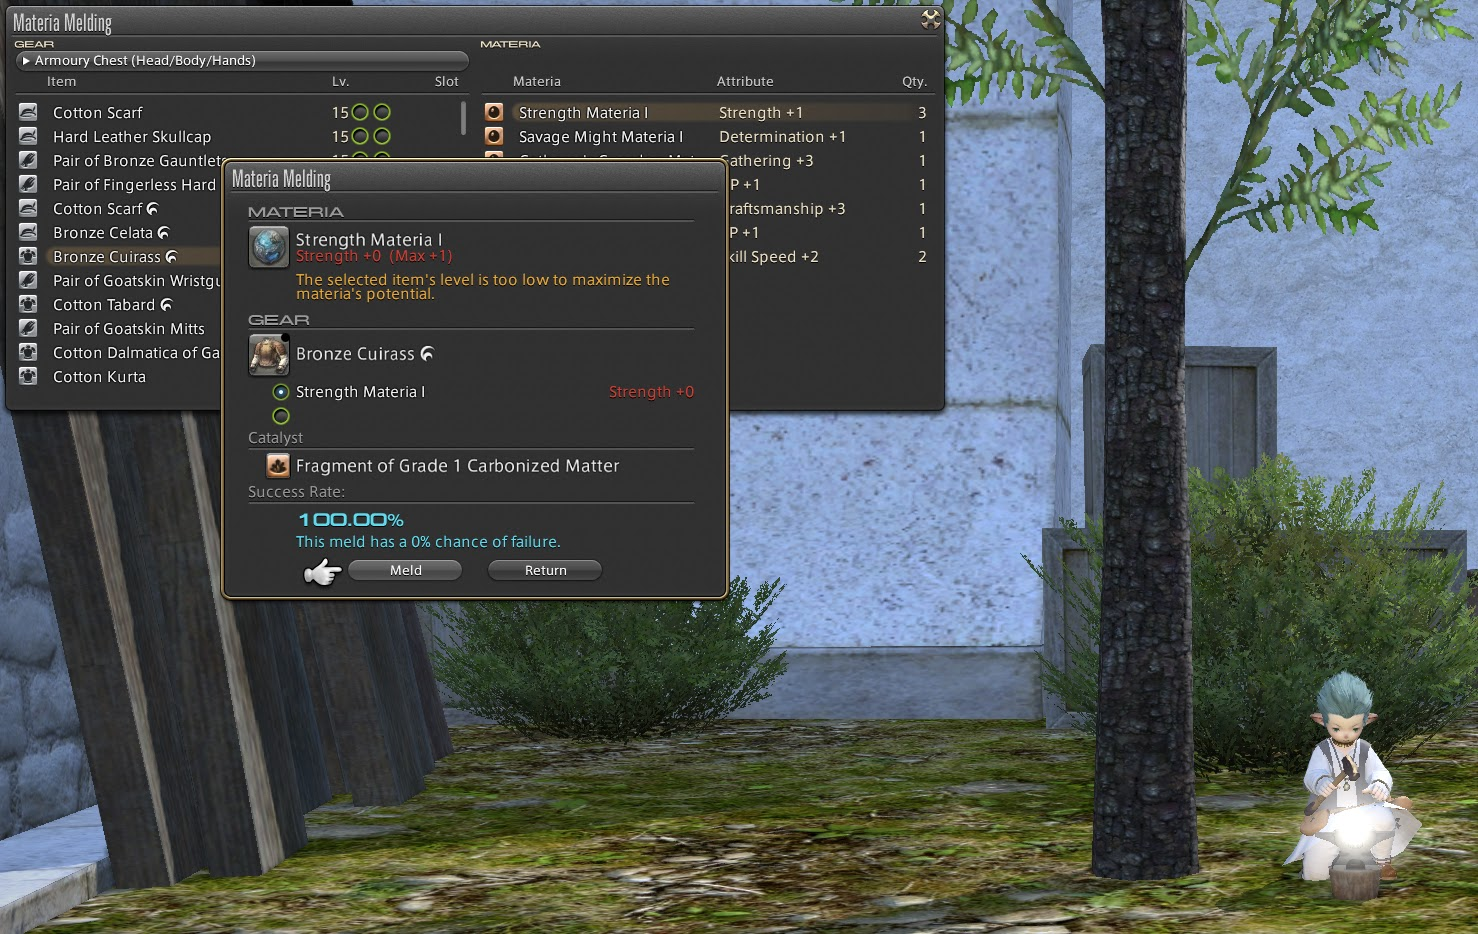 Ffxiv materia slots - Expansion slots wiki